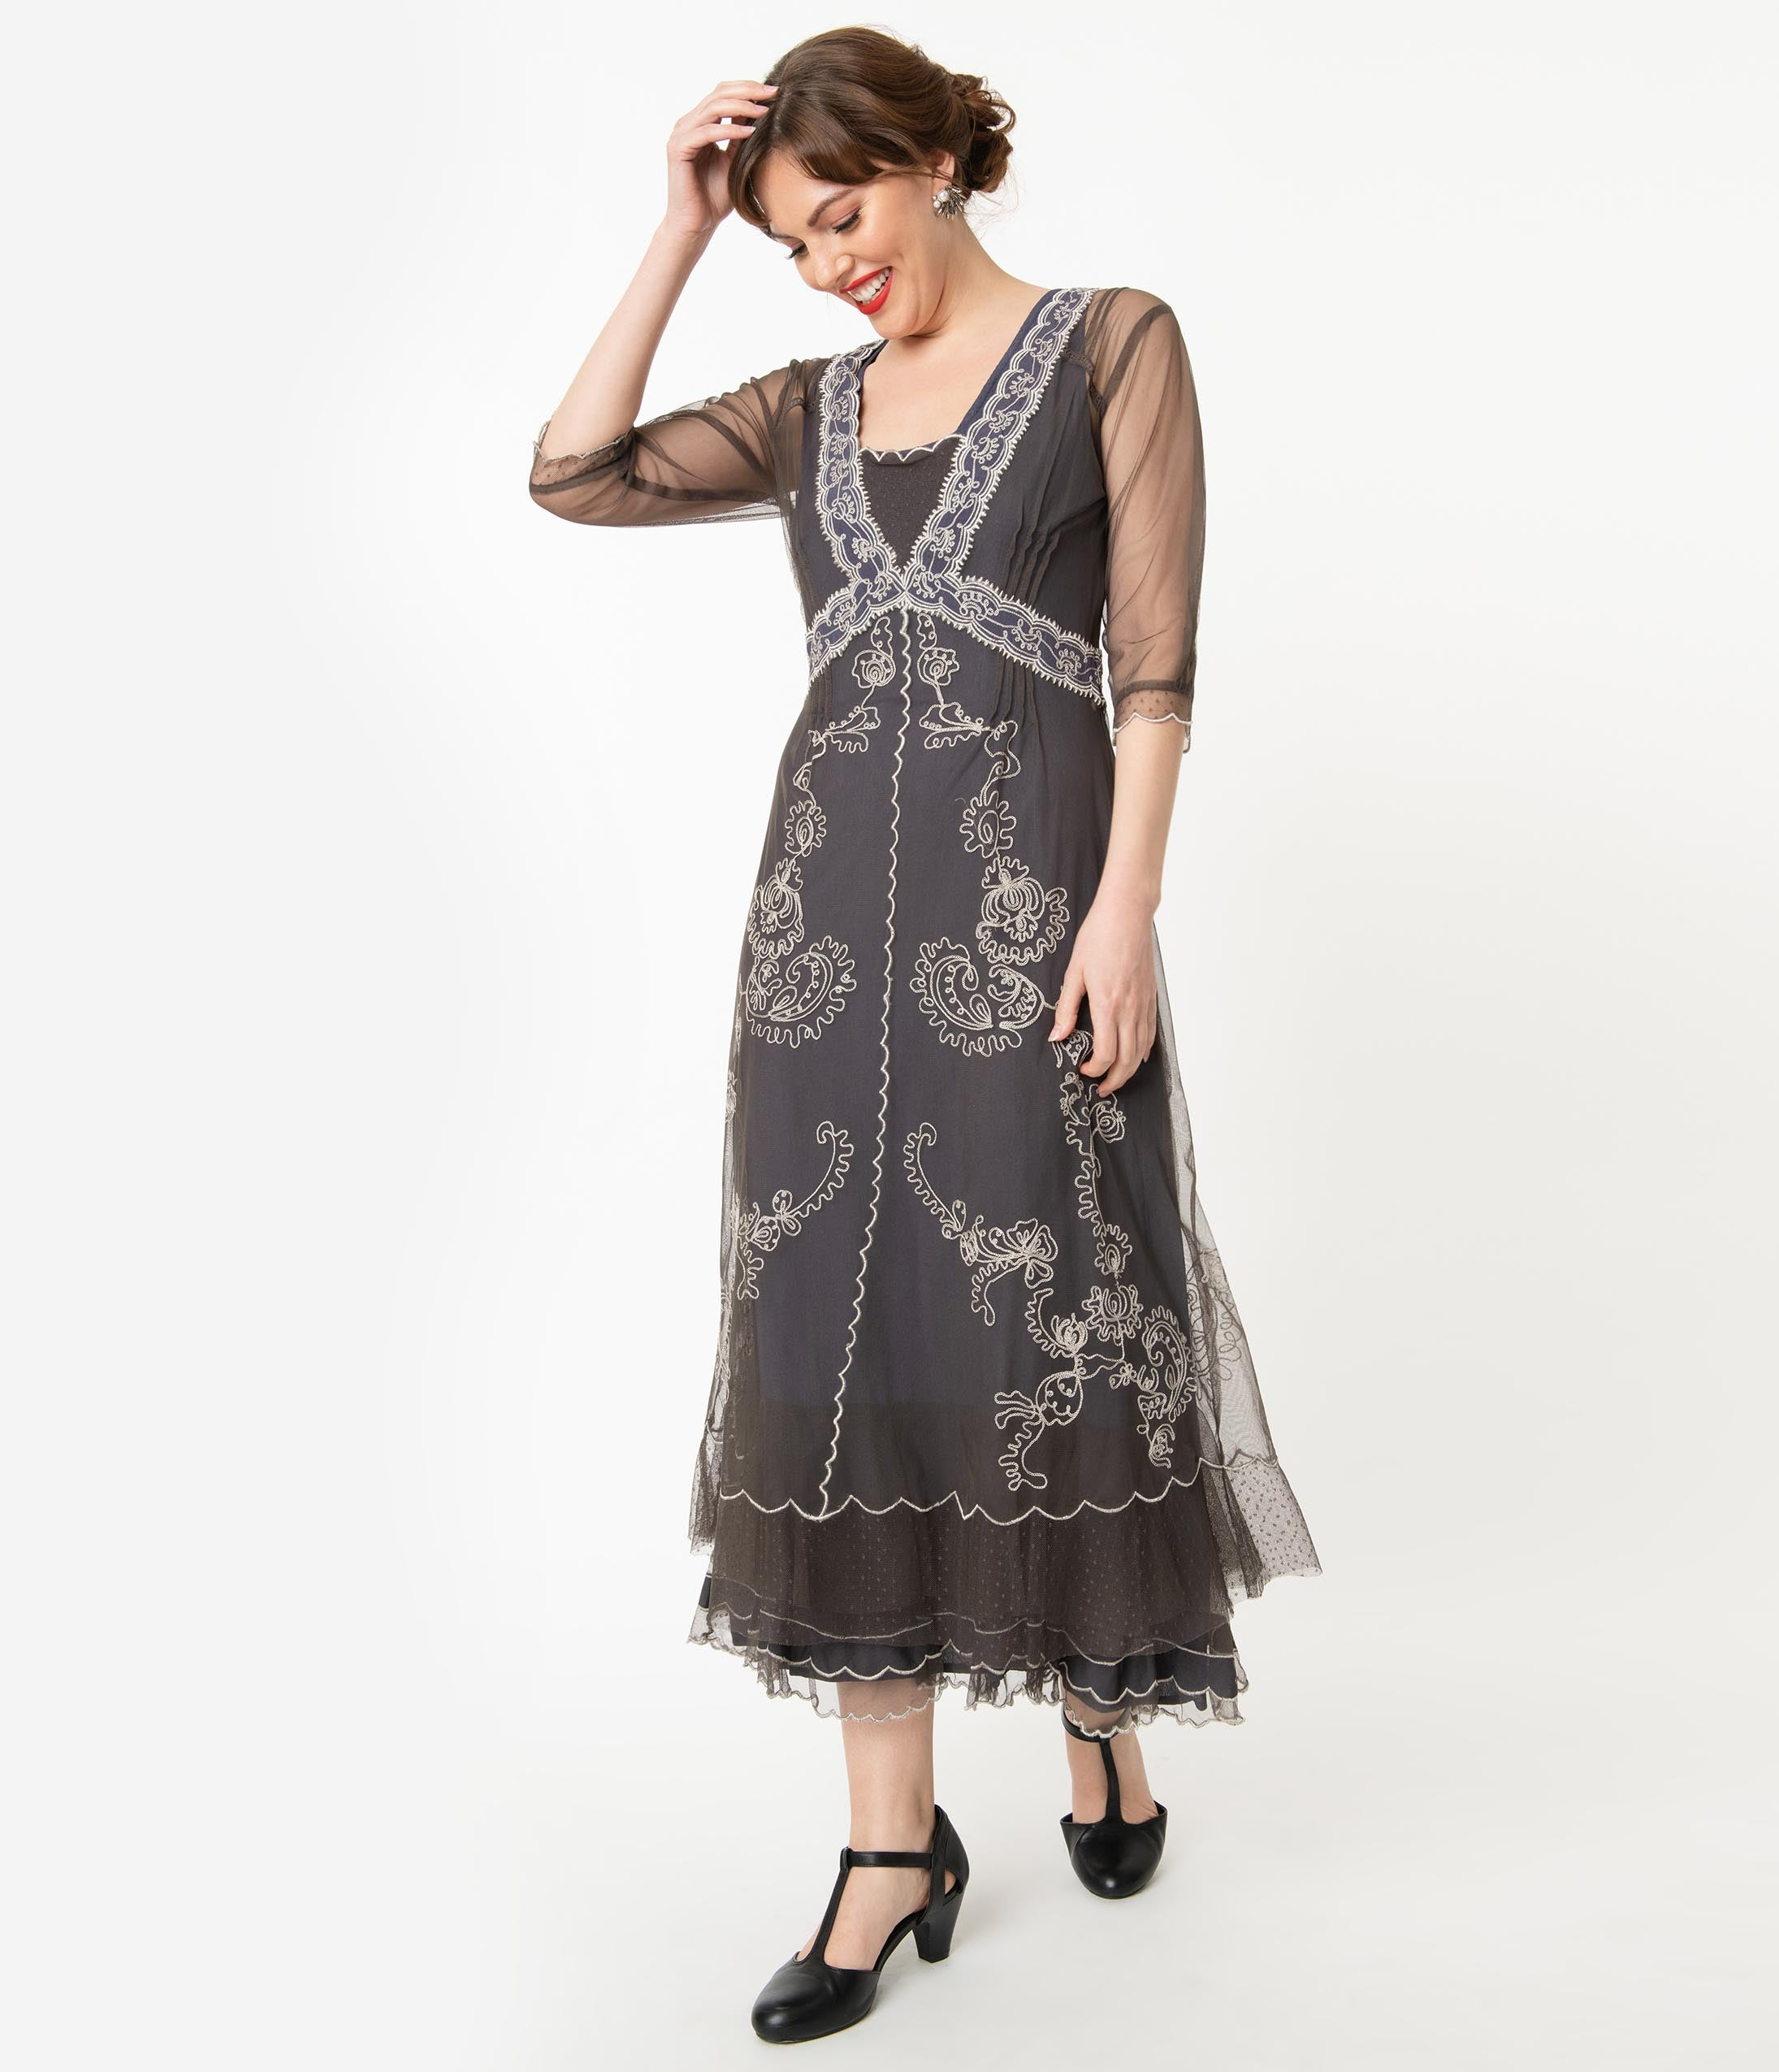 Great Gatsby Dress – Great Gatsby Dresses for Sale Vintage Style Grey Mesh Embroidered Edwardian Flapper Dress $308.00 AT vintagedancer.com